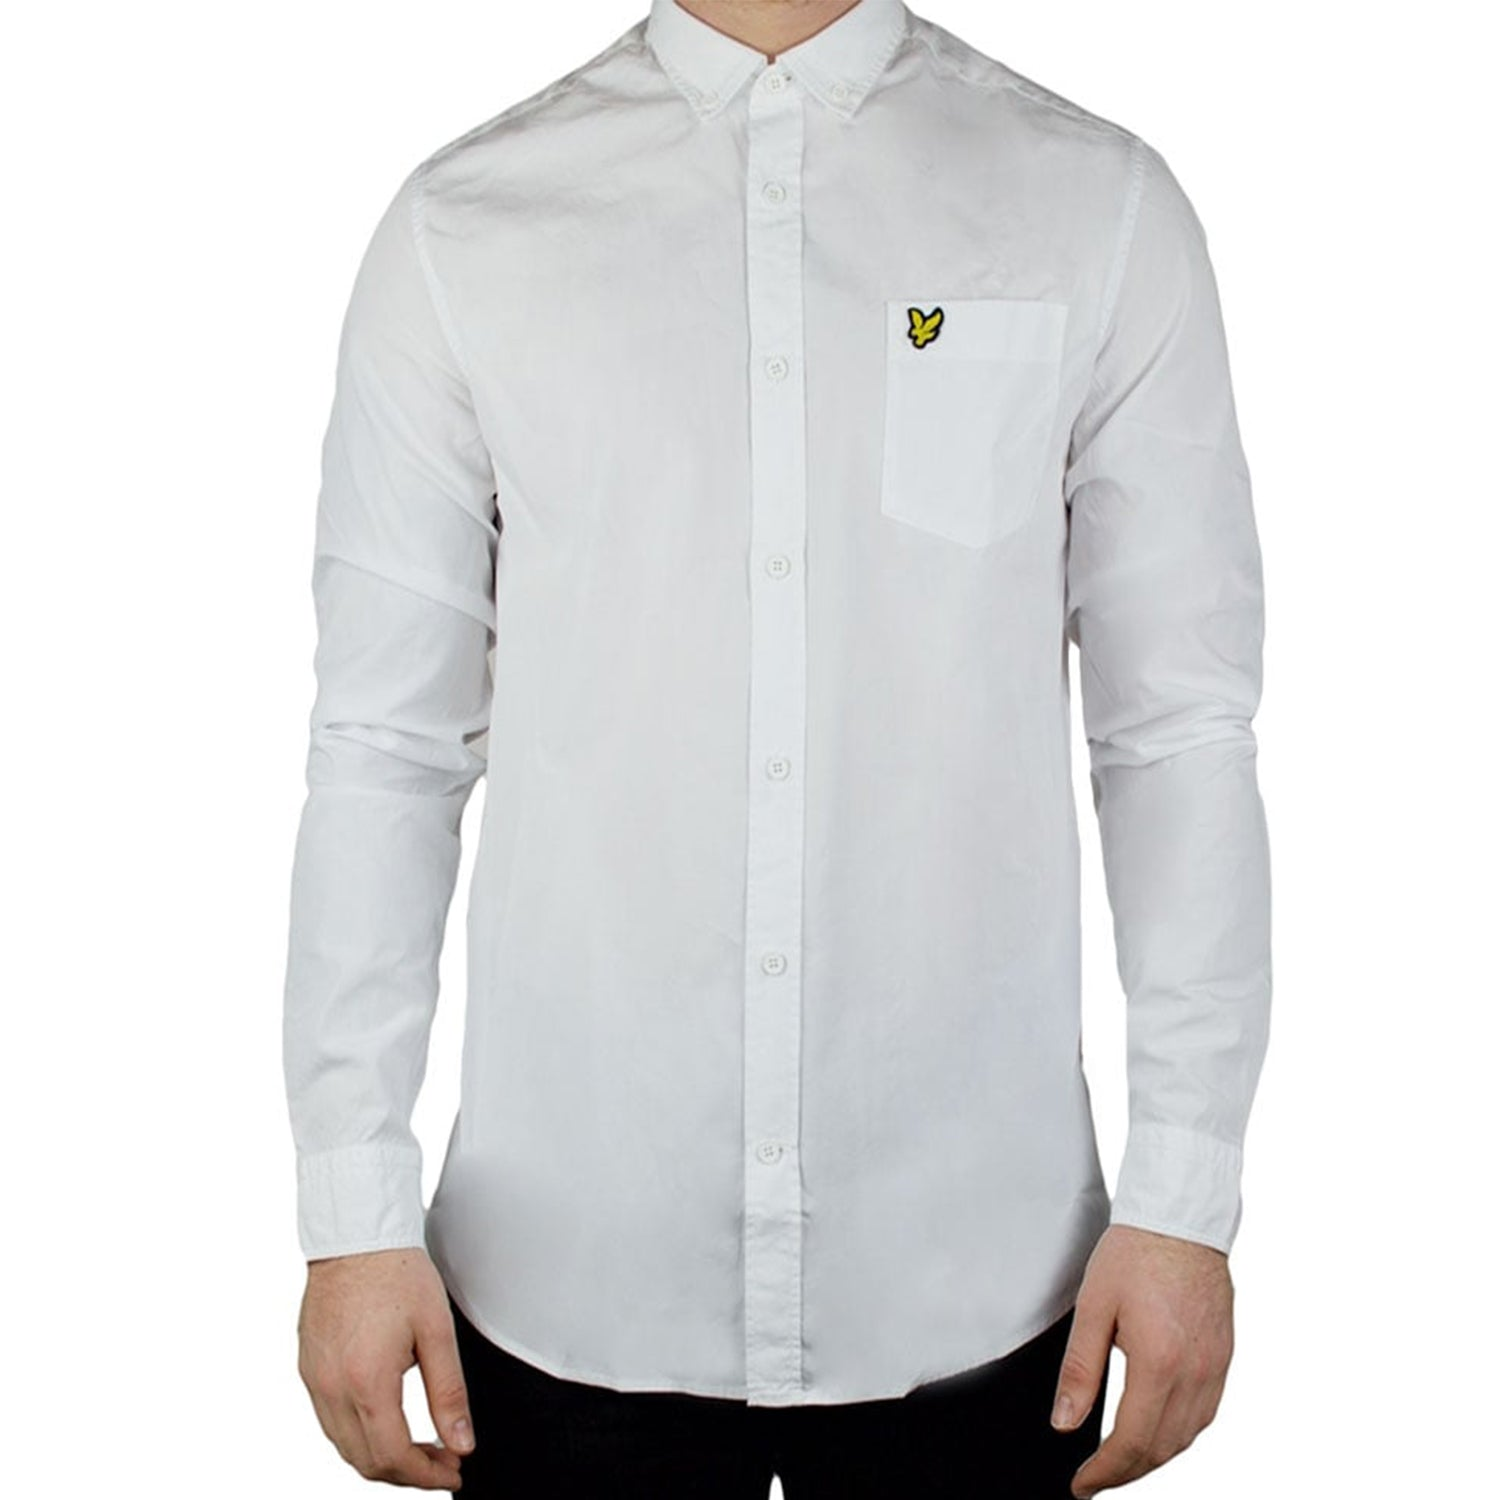 Lyle & Scott Long Sleeve Garment Dye Shirt